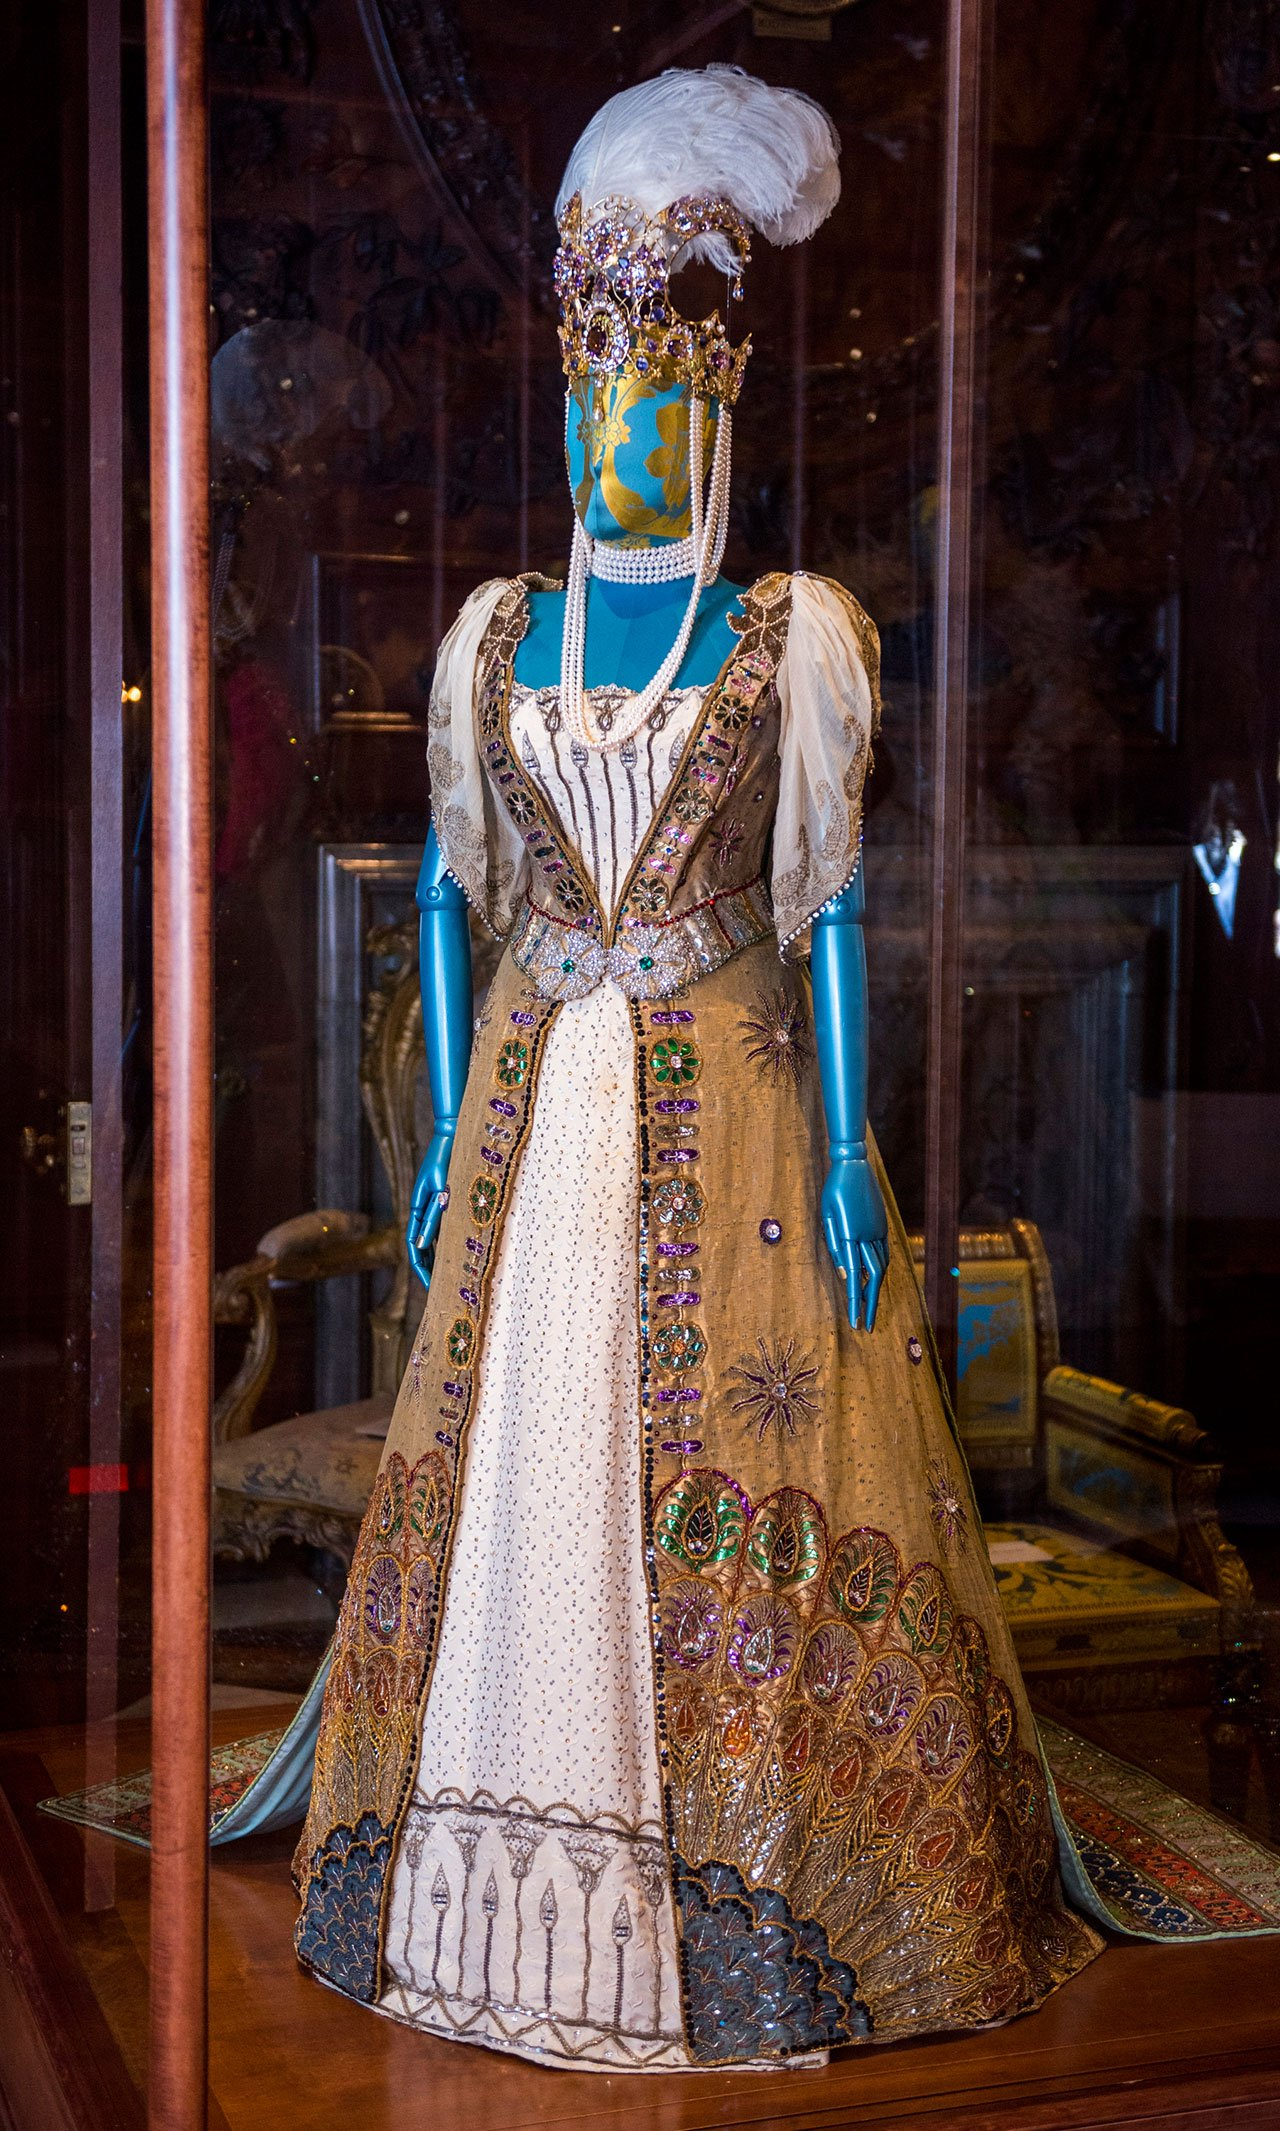 Duchess Louise's Worth dress from the Devonshire House Ball,one of more than 100 dresses spanning 500 years of history at Chatsworth House Style.Photo courtesy Chatsworth House Trust.